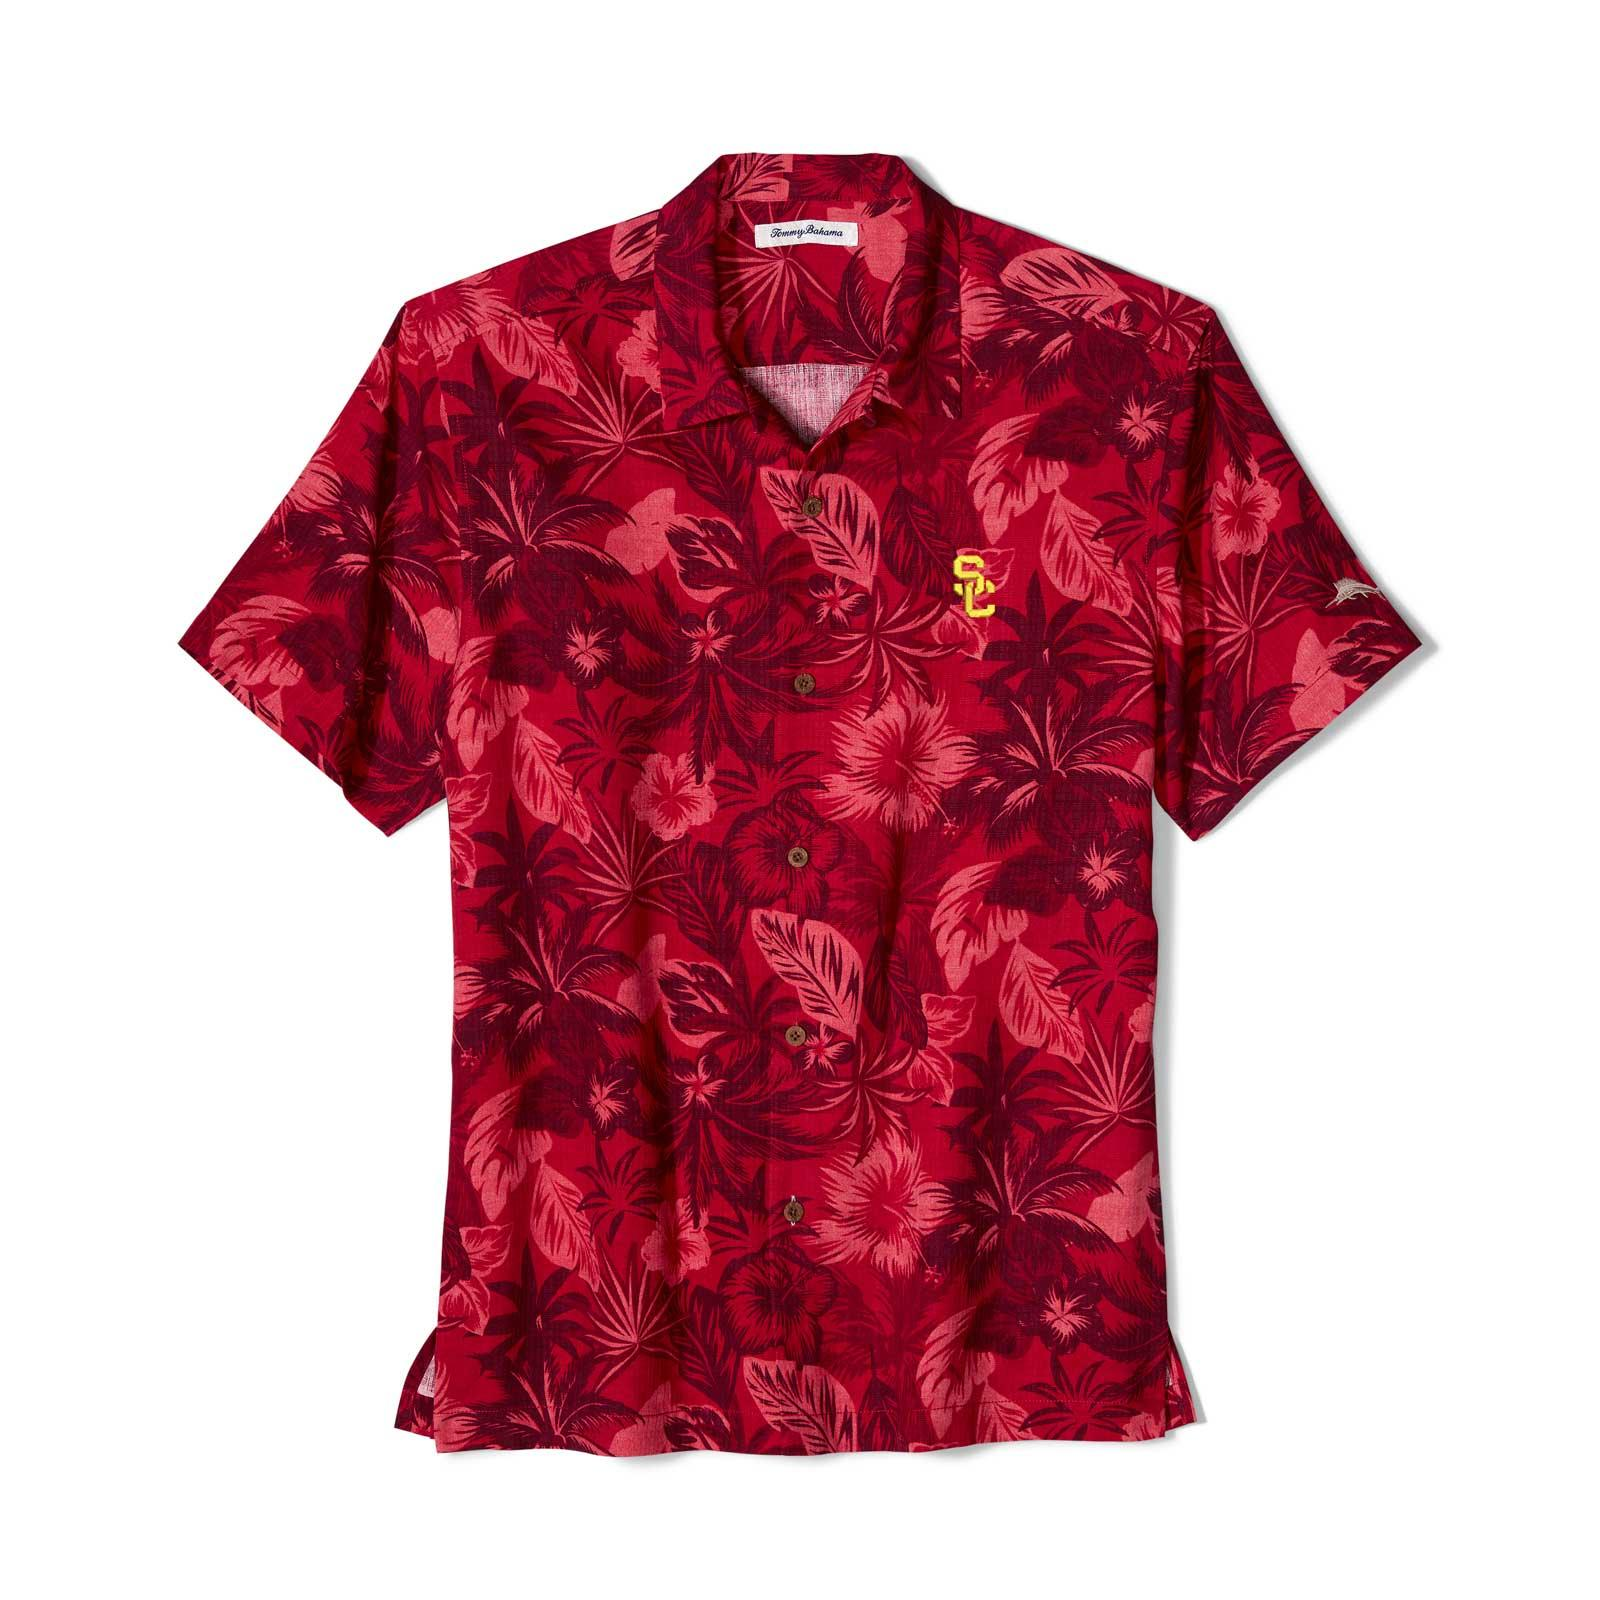 USC Trojans SC Interlock Fuego Floral Camp Shirt